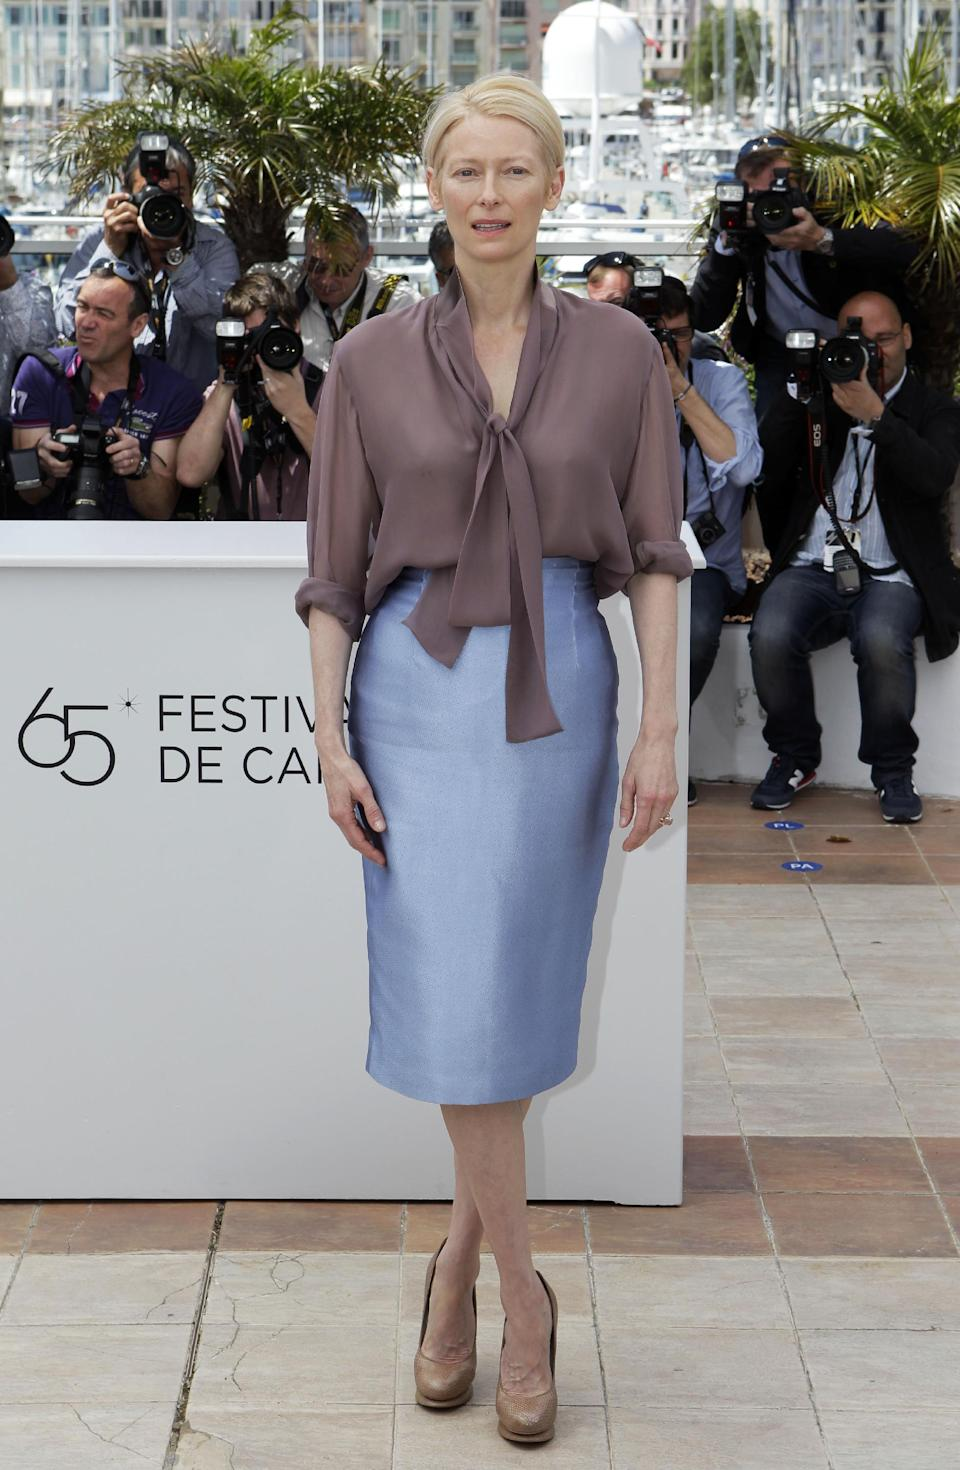 Actress Tilda Swinton poses during a photo call for Moonrise Kingdom at the 65th international film festival, in Cannes, southern France, Wednesday, May 16, 2012. (AP Photo/Lionel Cironneau)